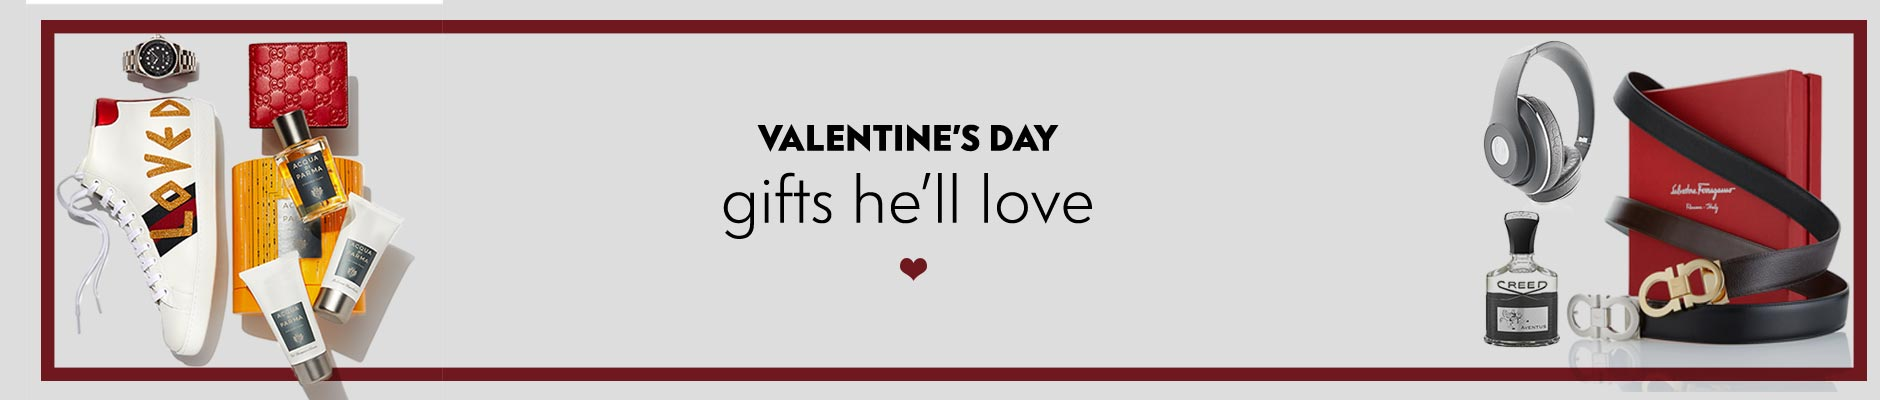 Valentine's Day - Gifts he'll love